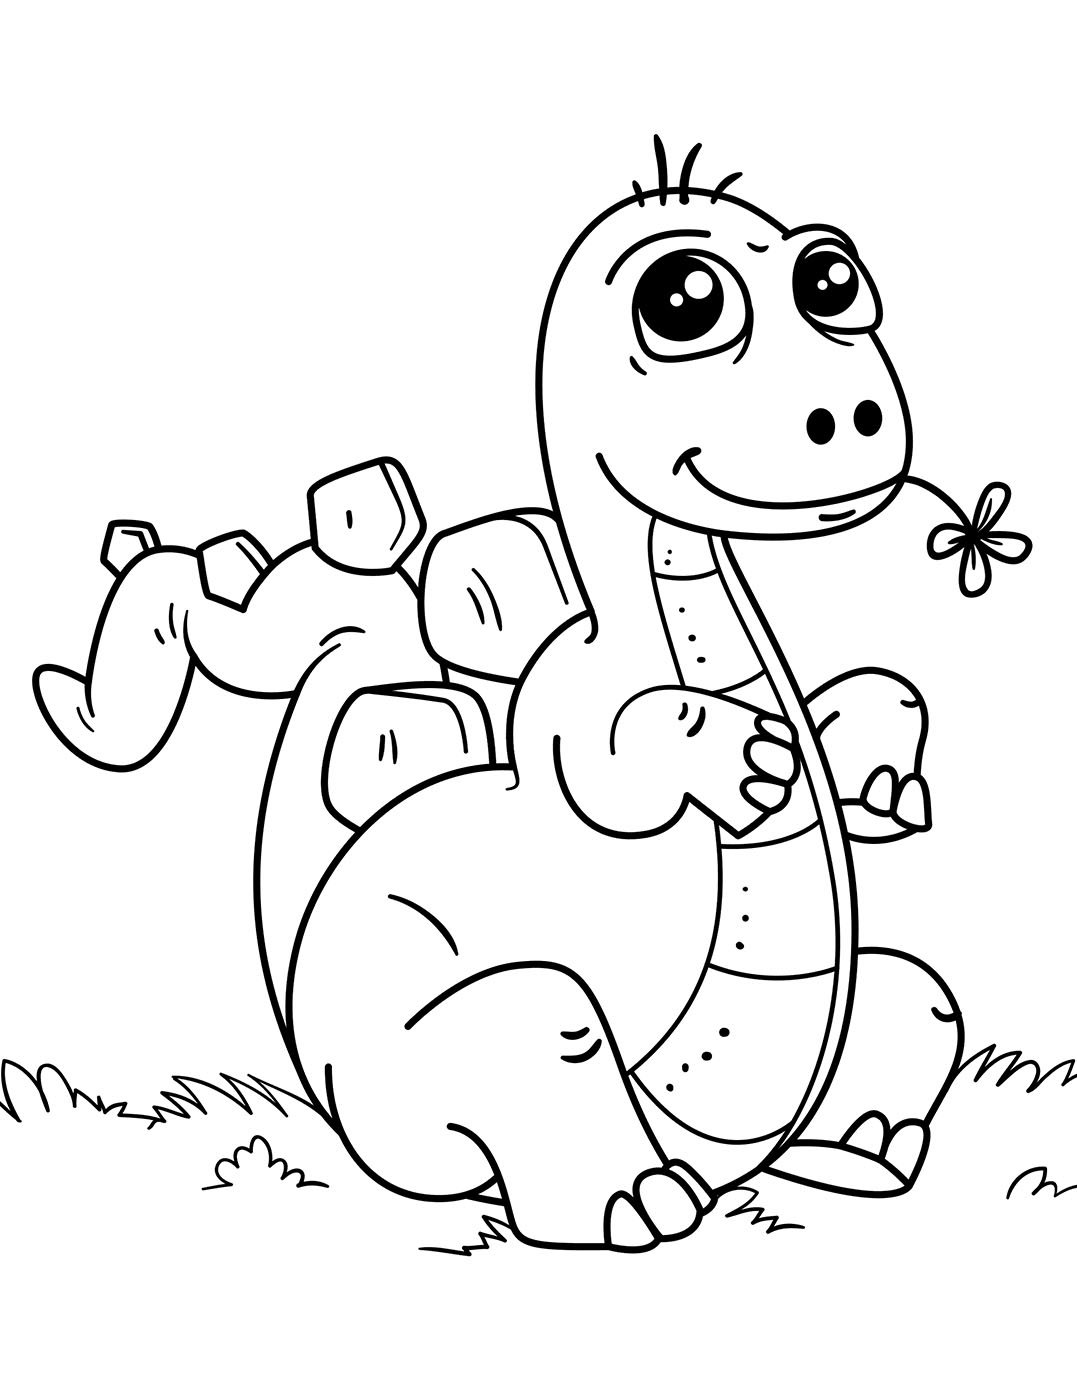 Dinosaurs coloring pages 53